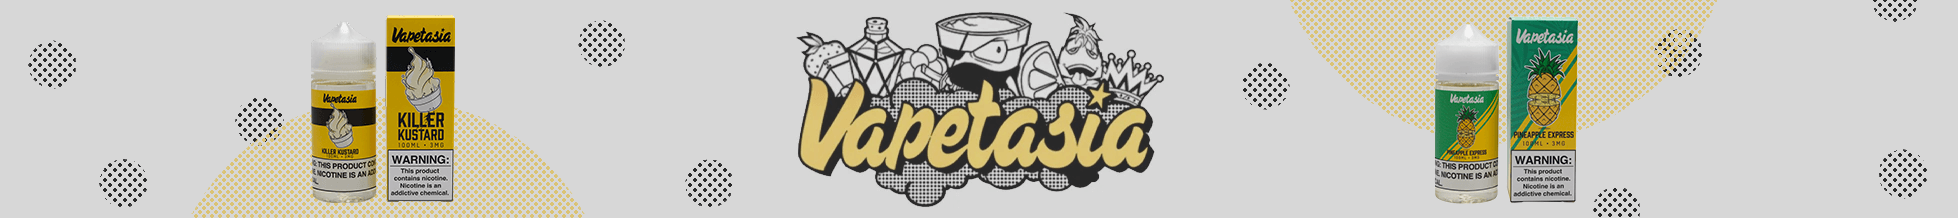 vapetasia-juice-category-banner.png